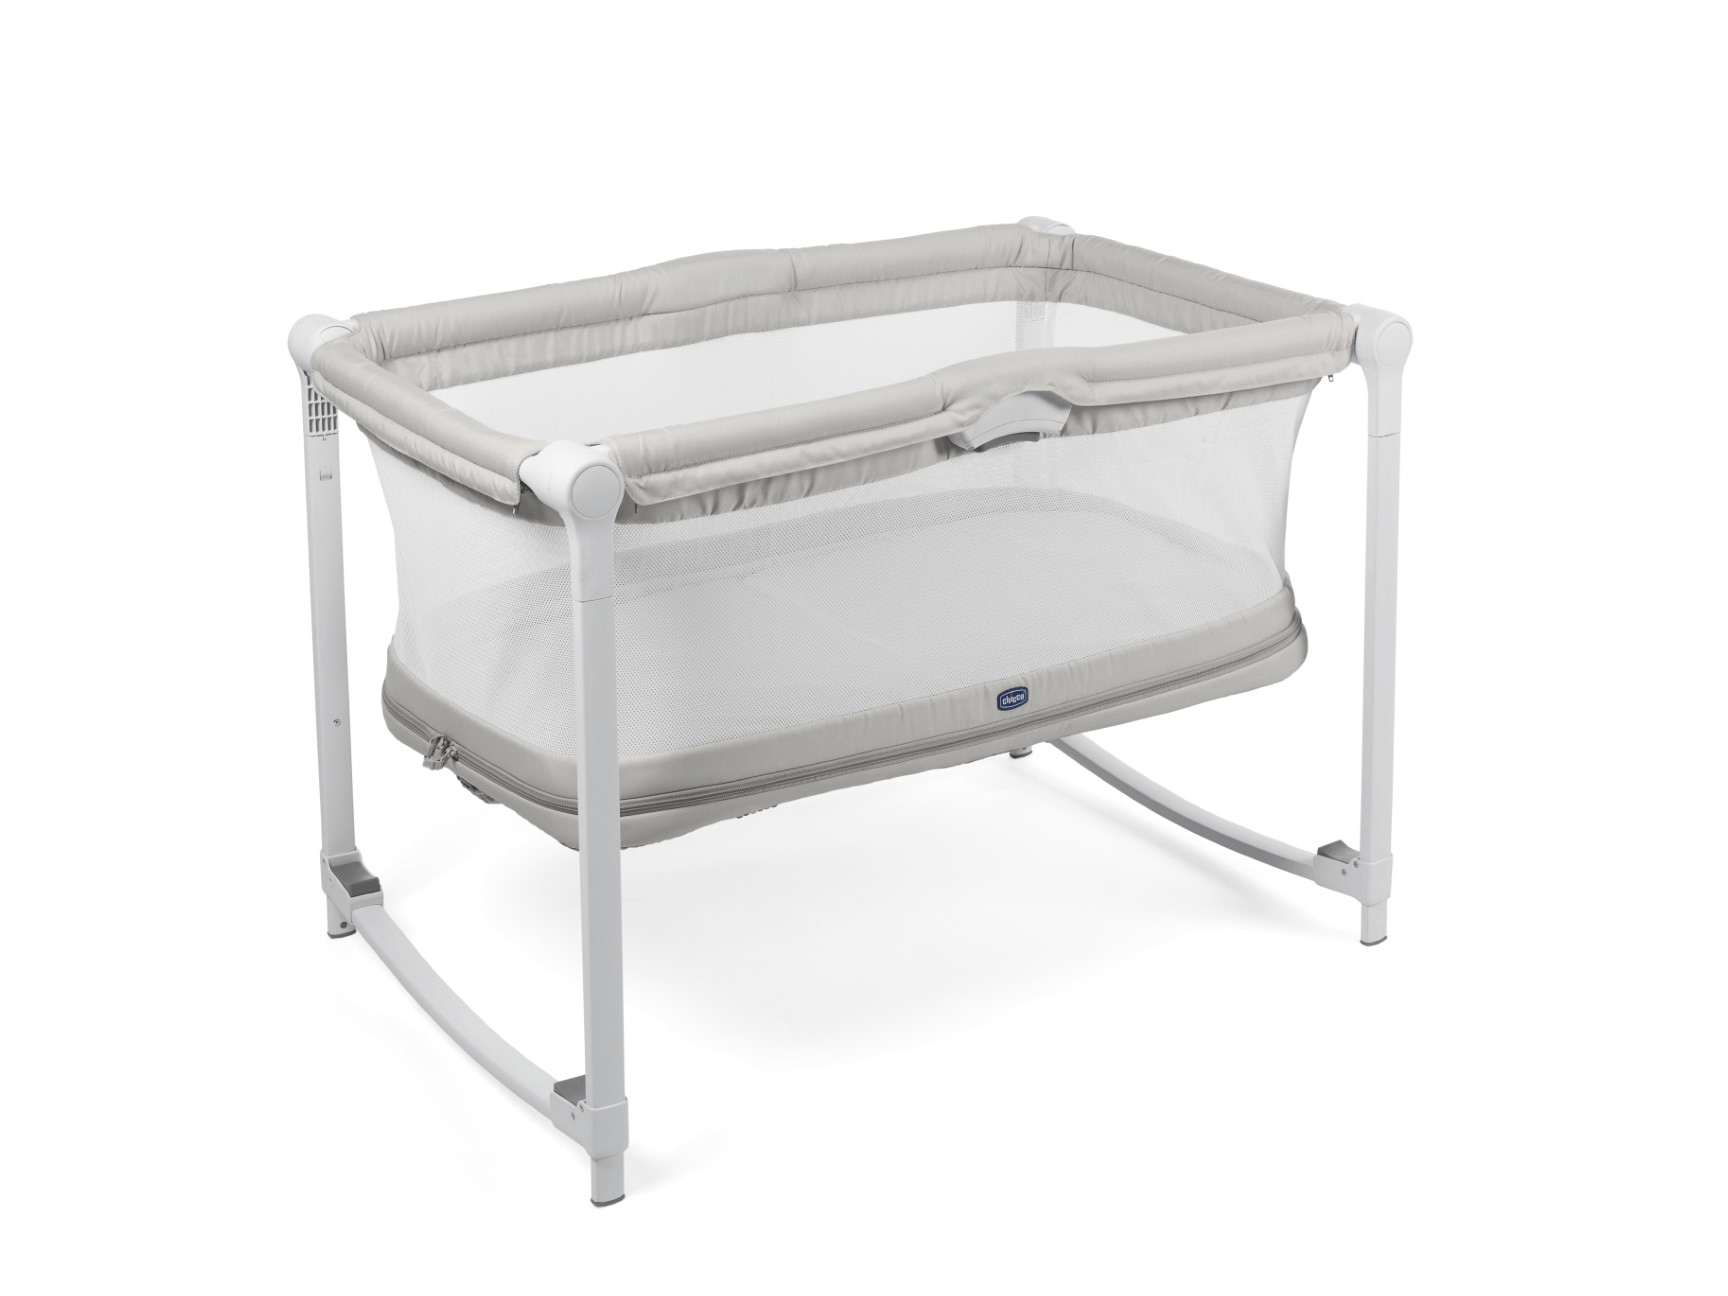 Baby Cradle Dimensions Best Travel Cots For All Ages From Newborn To Toddler